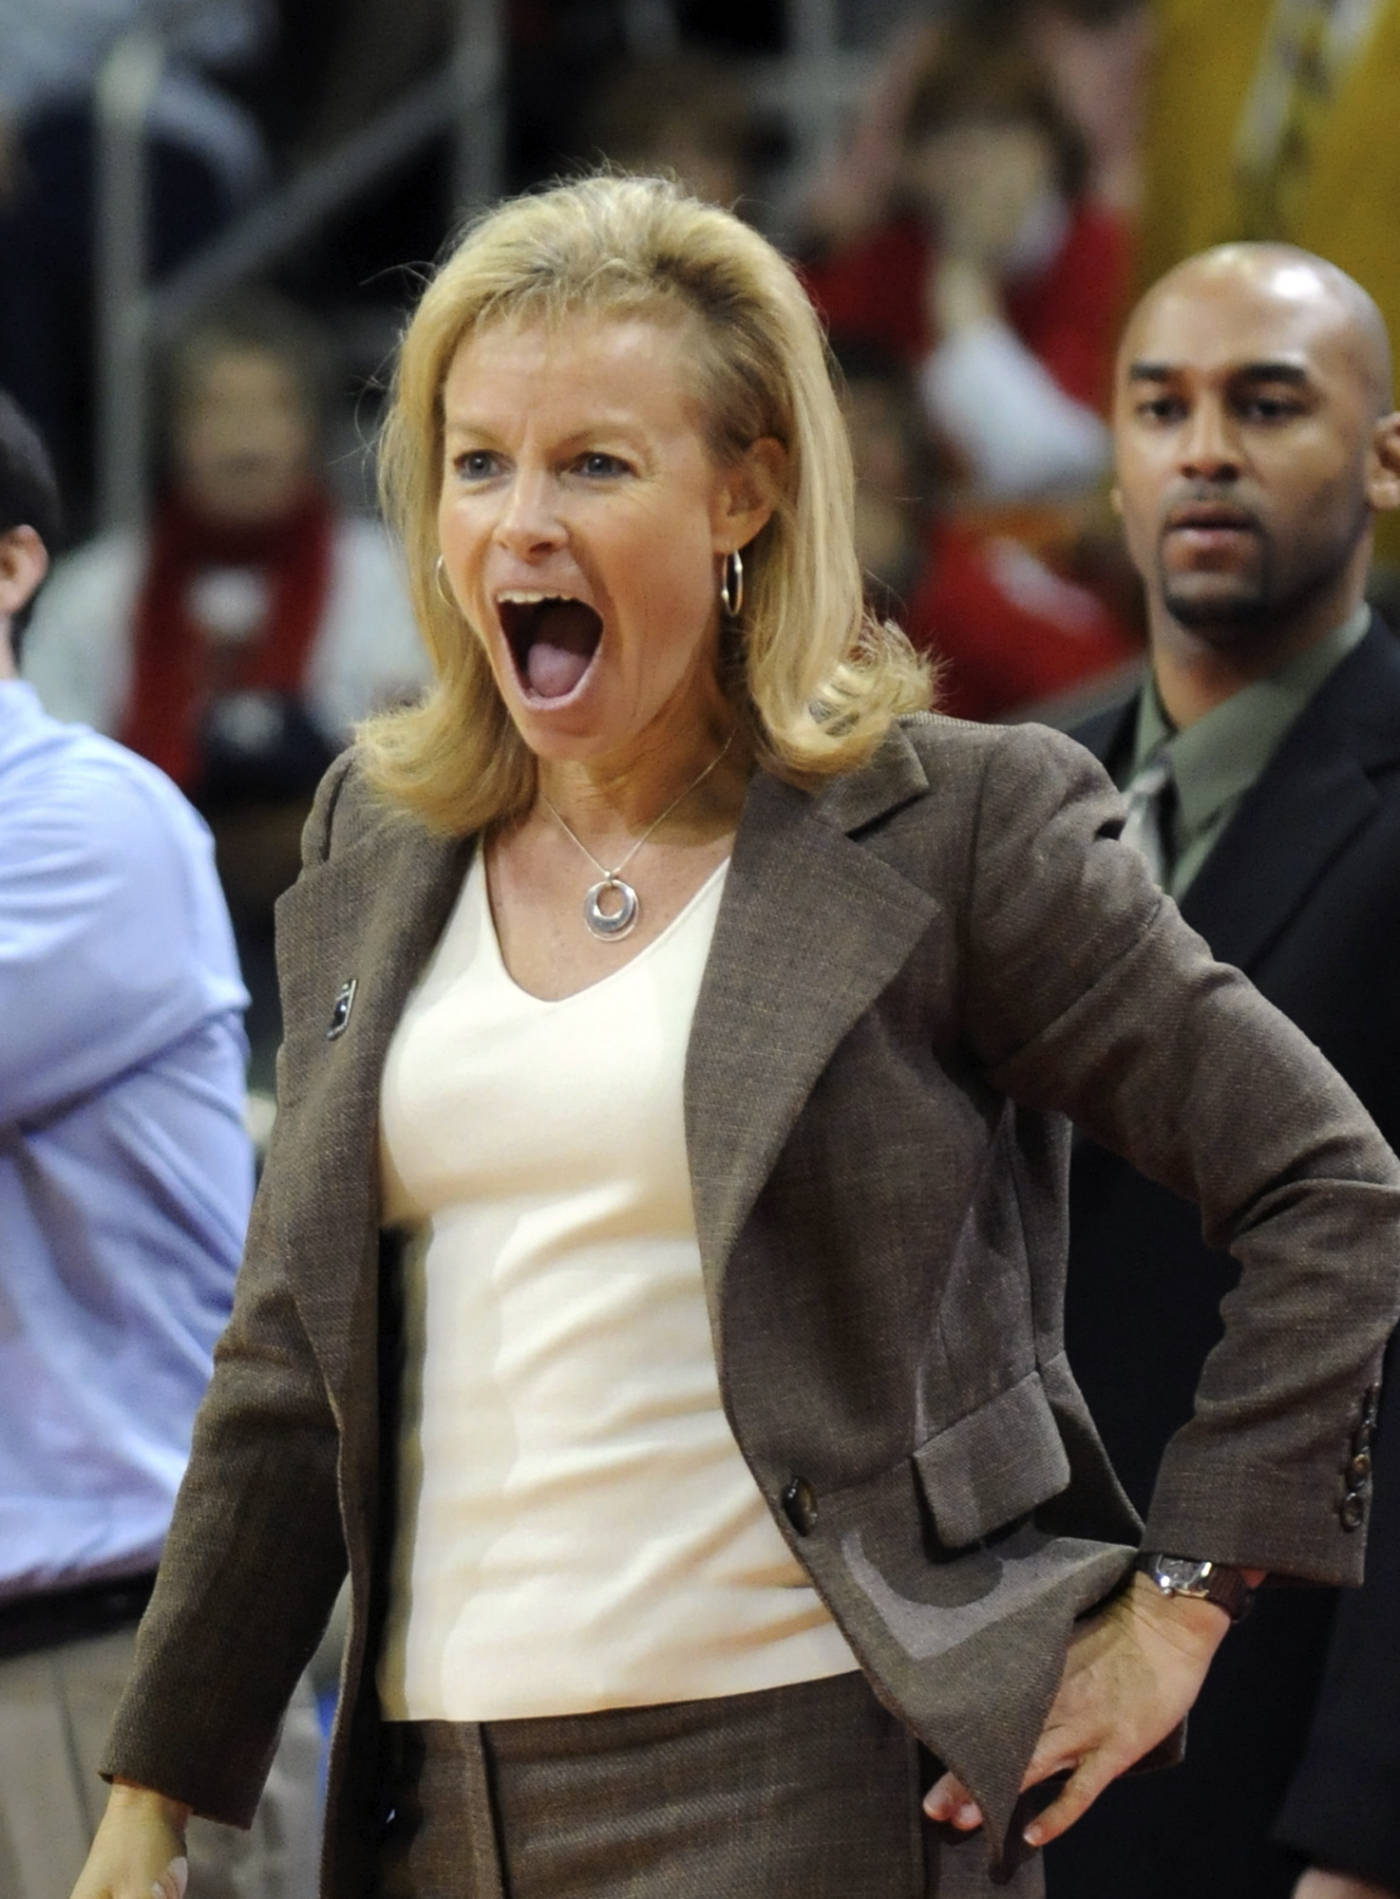 Florida State head coach Sue Semrau reacts to a foul call in overtime that ended up costing her team the game against Oklahoma State during the second round NCAA women's basketball tournament game, Monday March 24, 2008 in Des Moines, Iowa. Oklahoma State won 73-72. (AP Photo/Steve Pope)